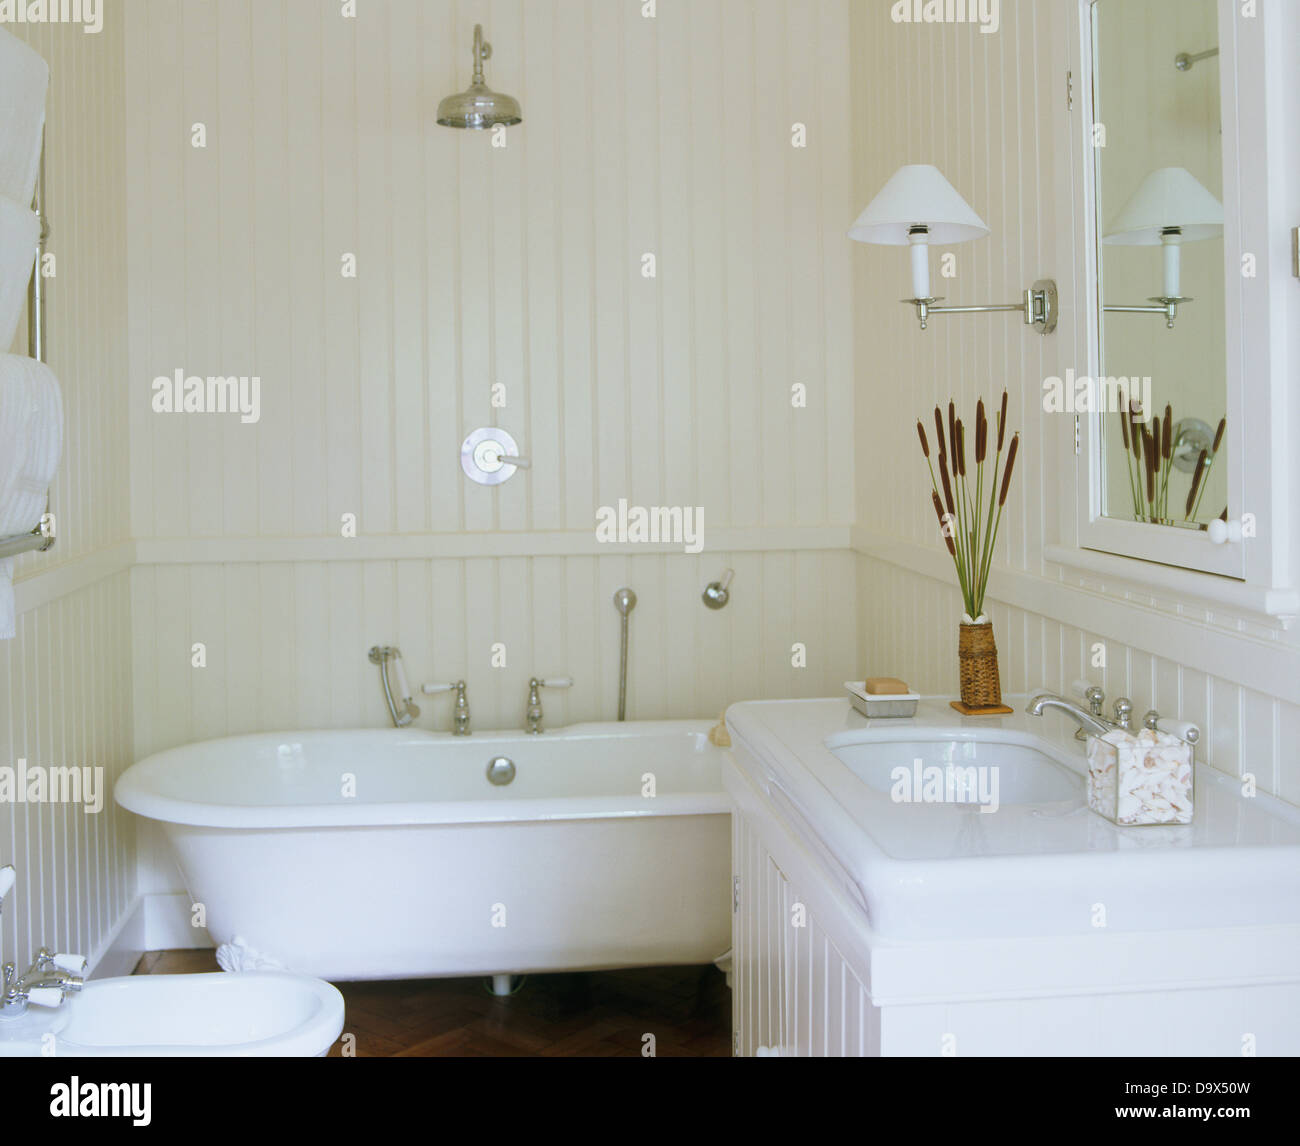 Chrome Shower Above Roll Top Bath In White Bathroom With White Painted  Tongue+groove